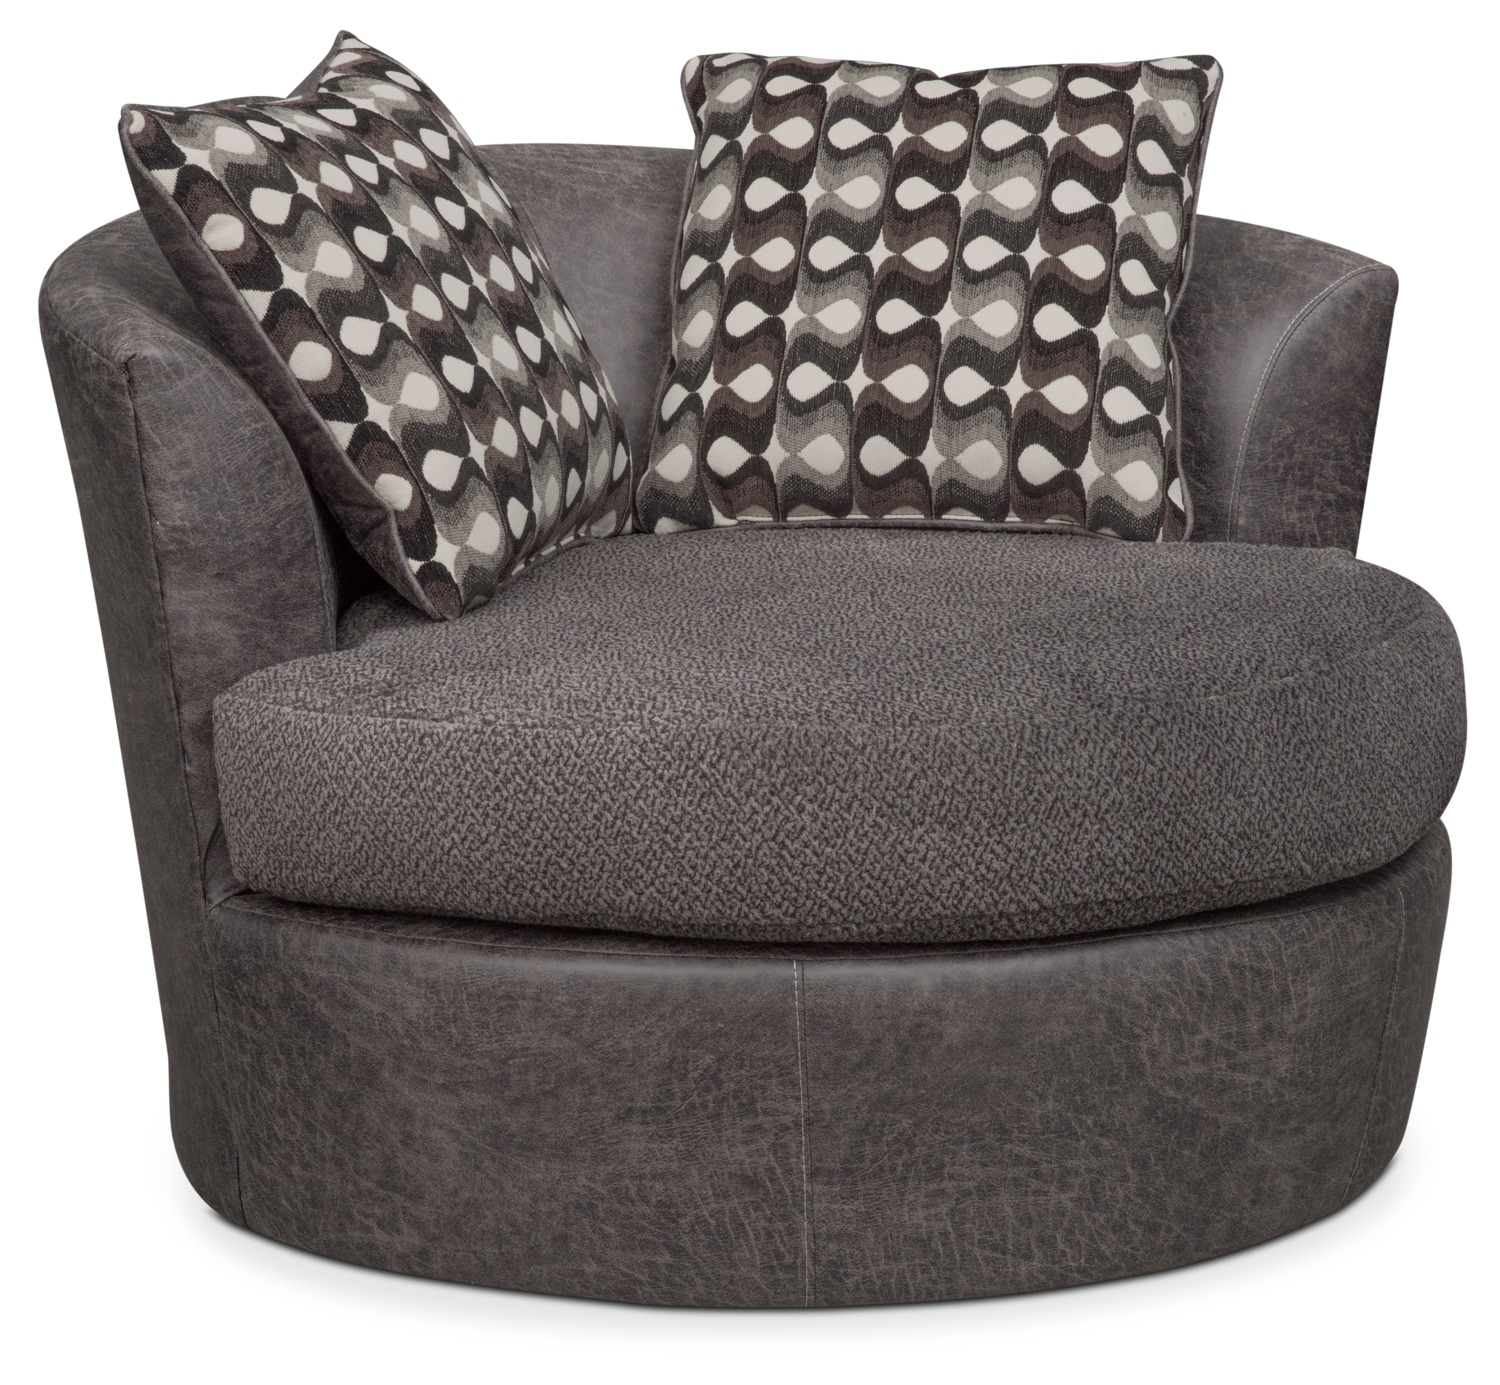 Brando Swivel Swivel Chair | Value City Furniture And Mattresses Inside Loft Smokey Swivel Accent Chairs (Image 5 of 20)